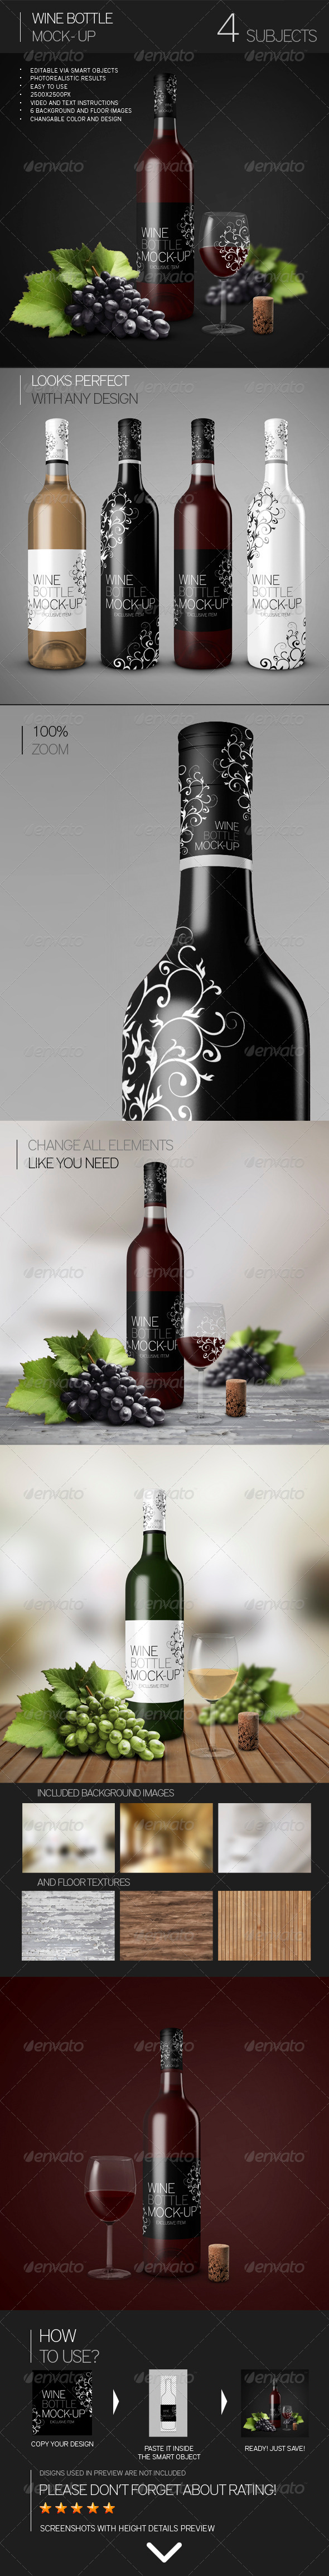 GraphicRiver Wine Bottle Mock-Up 7883779